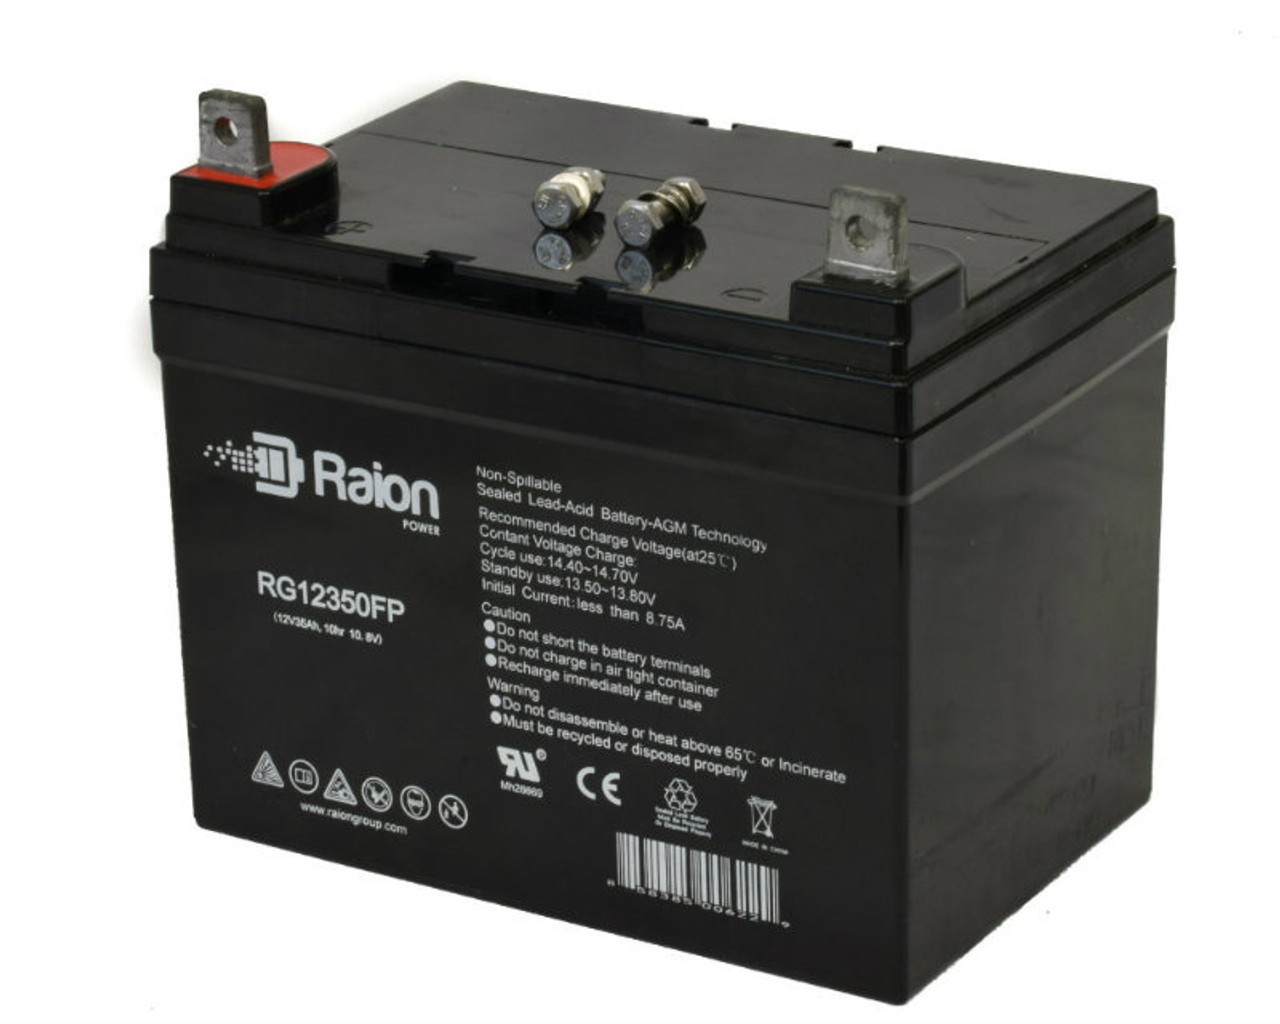 Raion Power RG12350FP Replacement Wheelchair Battery For IMC Heartway Rumba S HP4 (1 Pack)